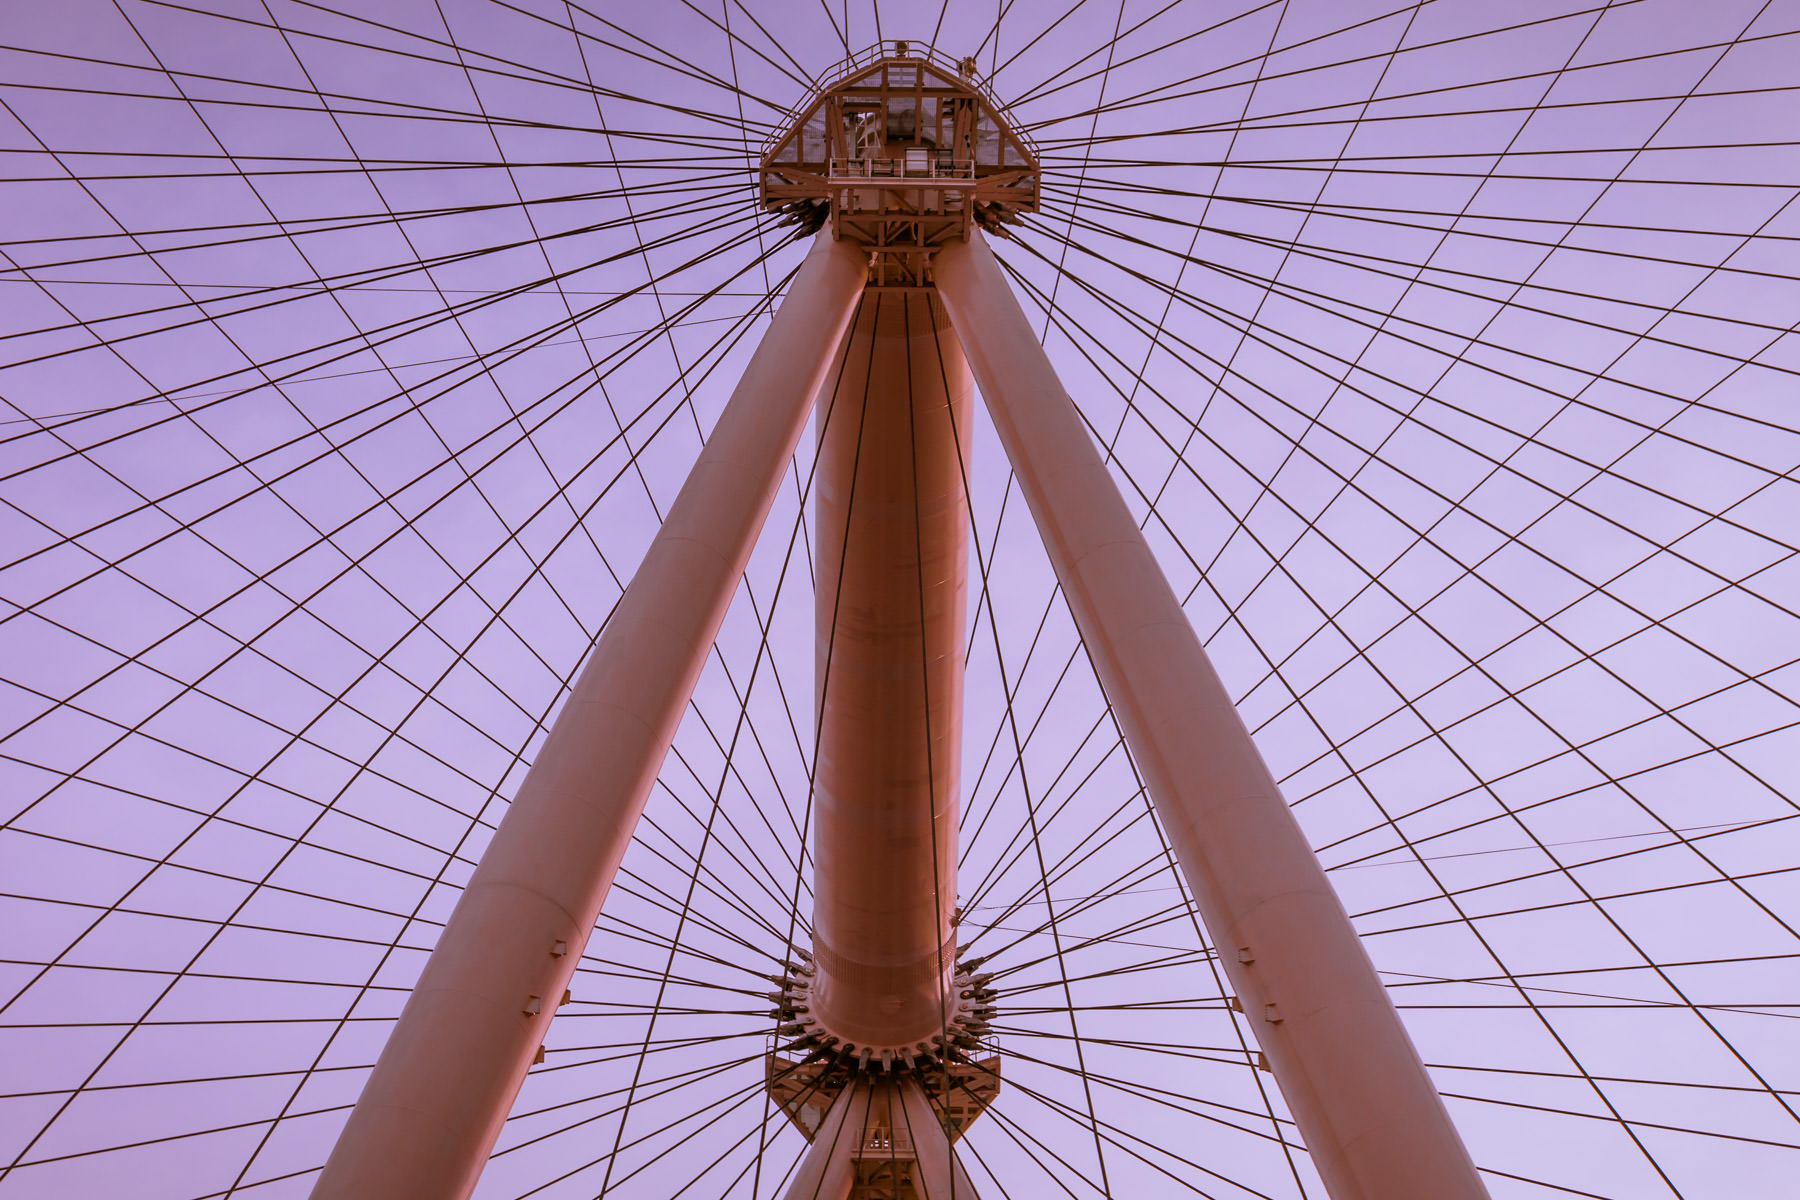 Detail of the support structure and cables of Las Vegas' High Roller observation wheel.